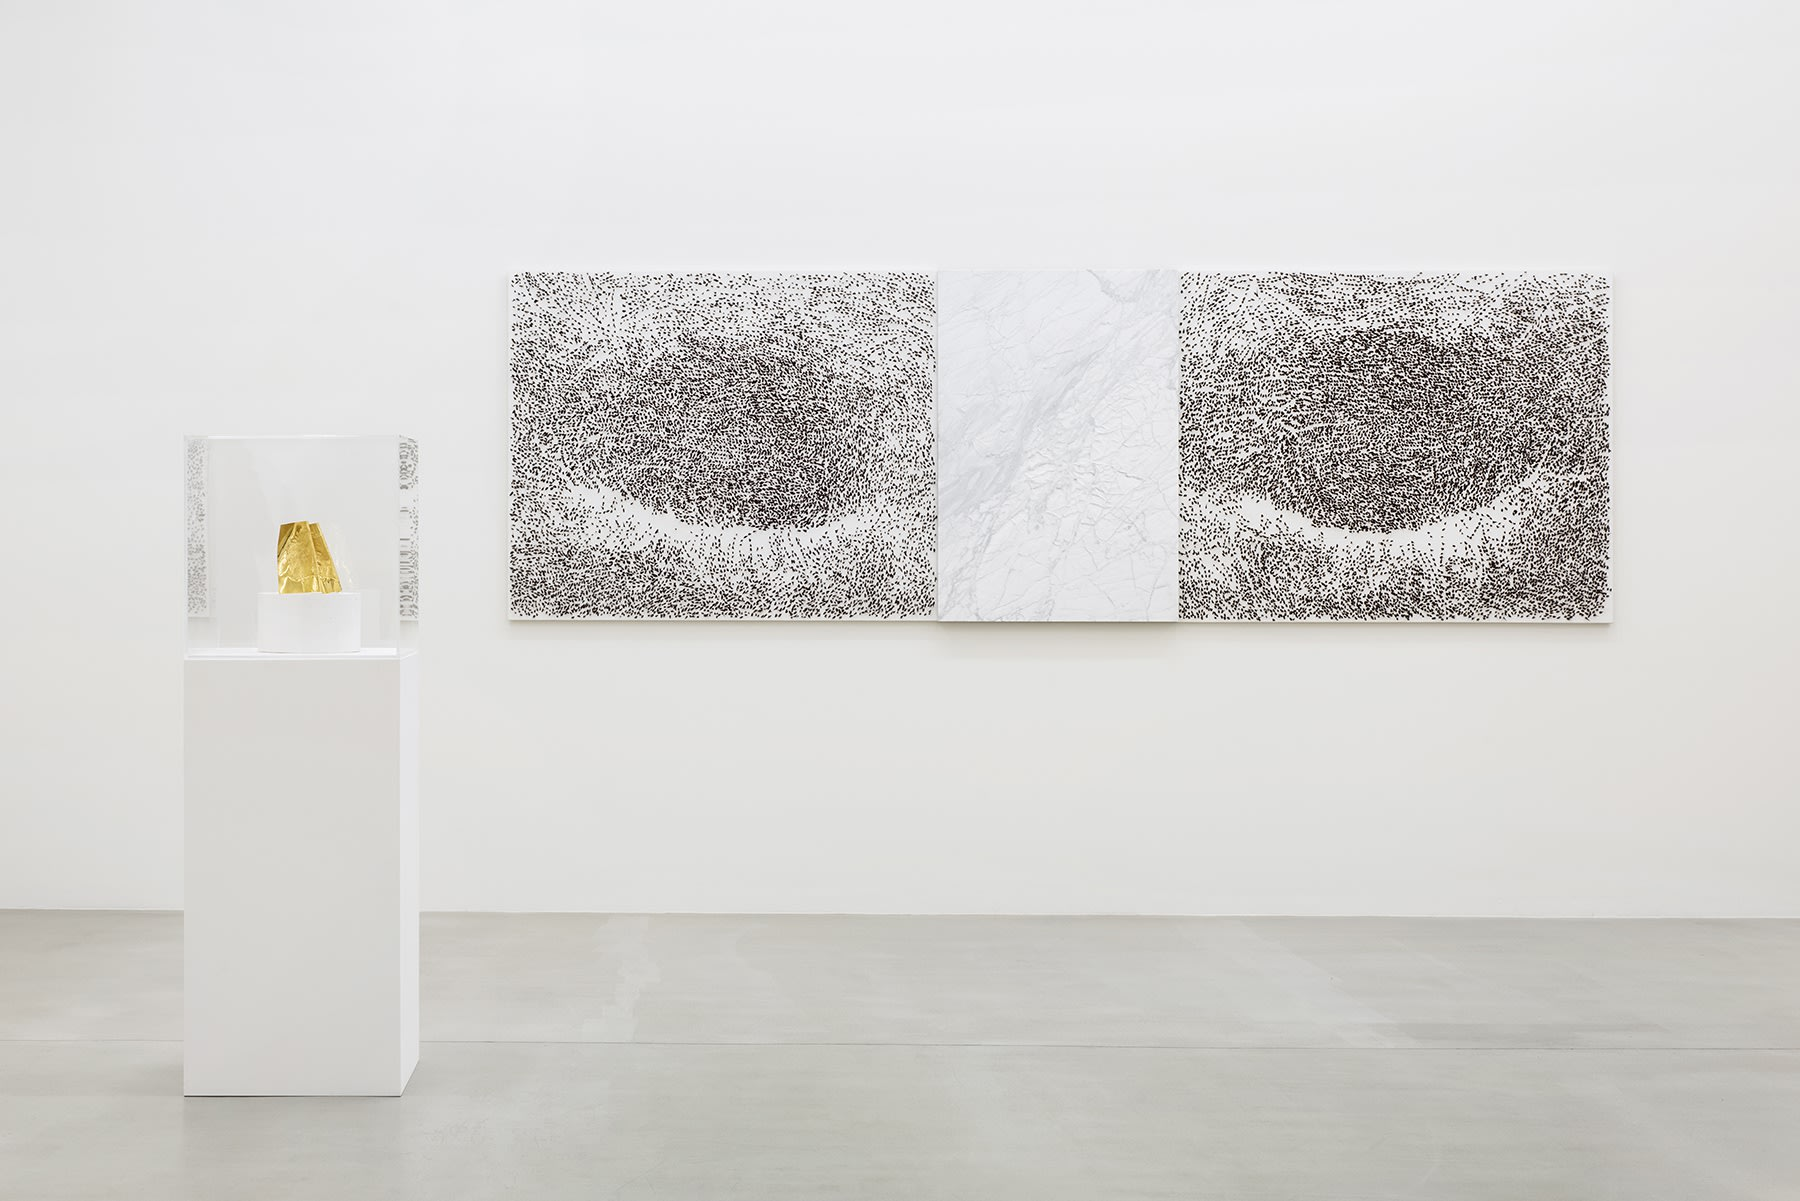 A gold object on a pedestal stands in front of a black and white abstract drawing on a gallery wall.